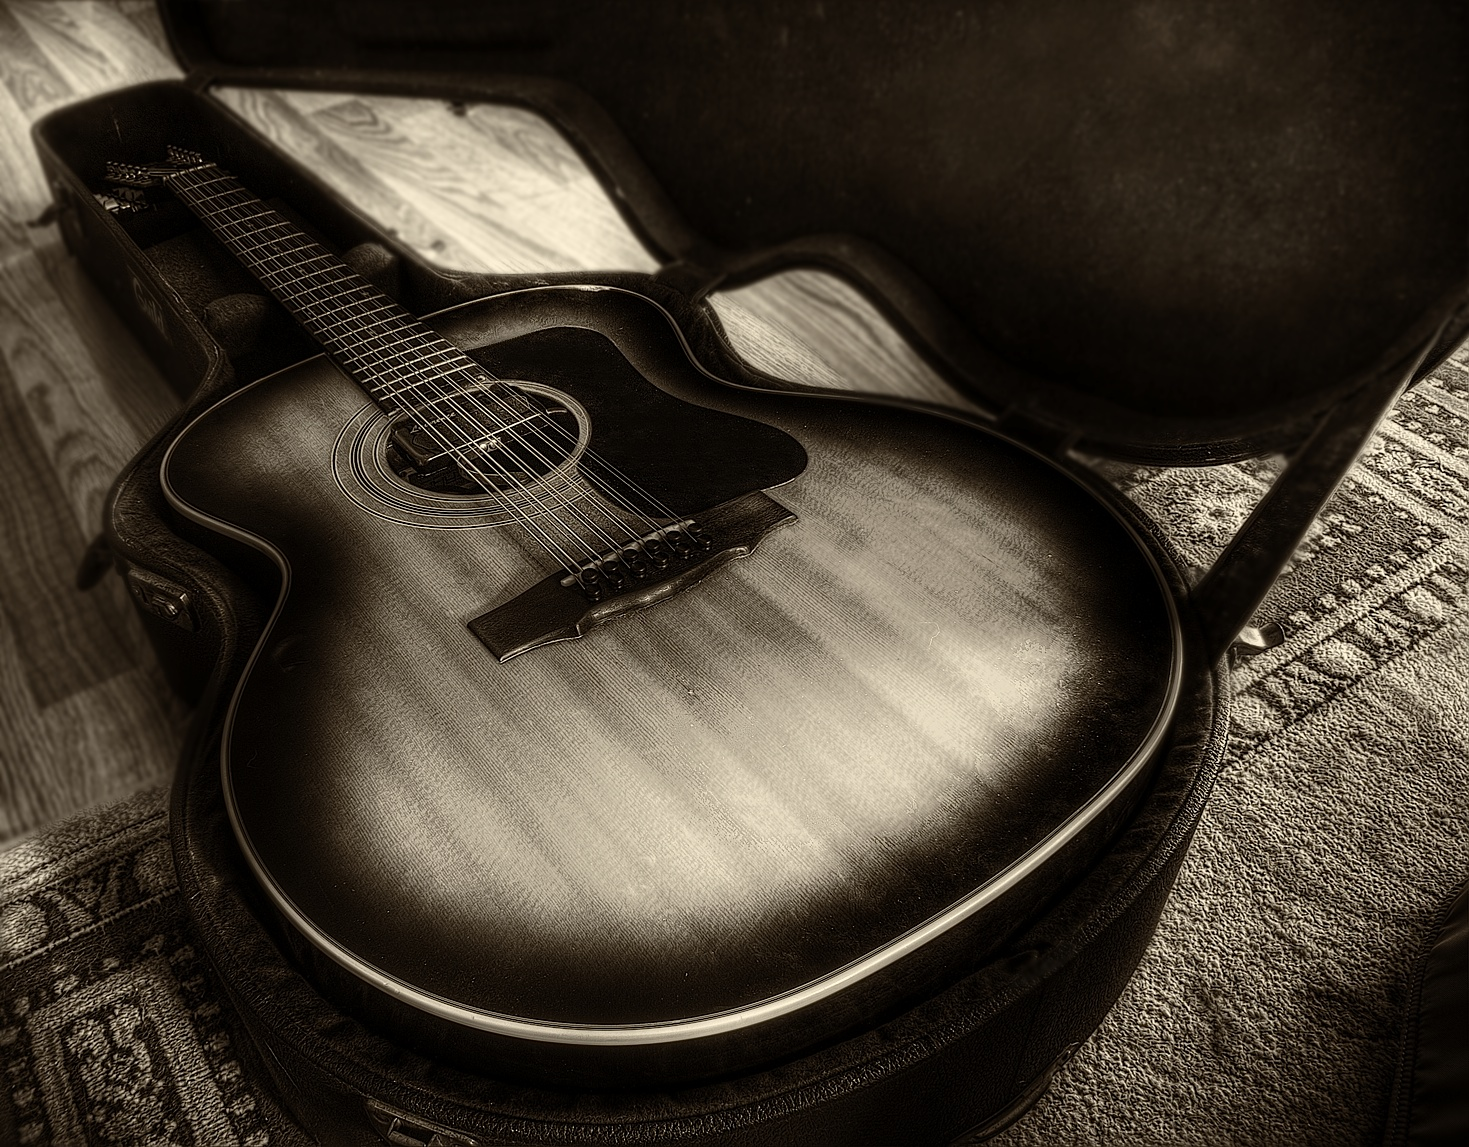 ULTIMATE GUITAR TABS 1100000 songs catalog with free